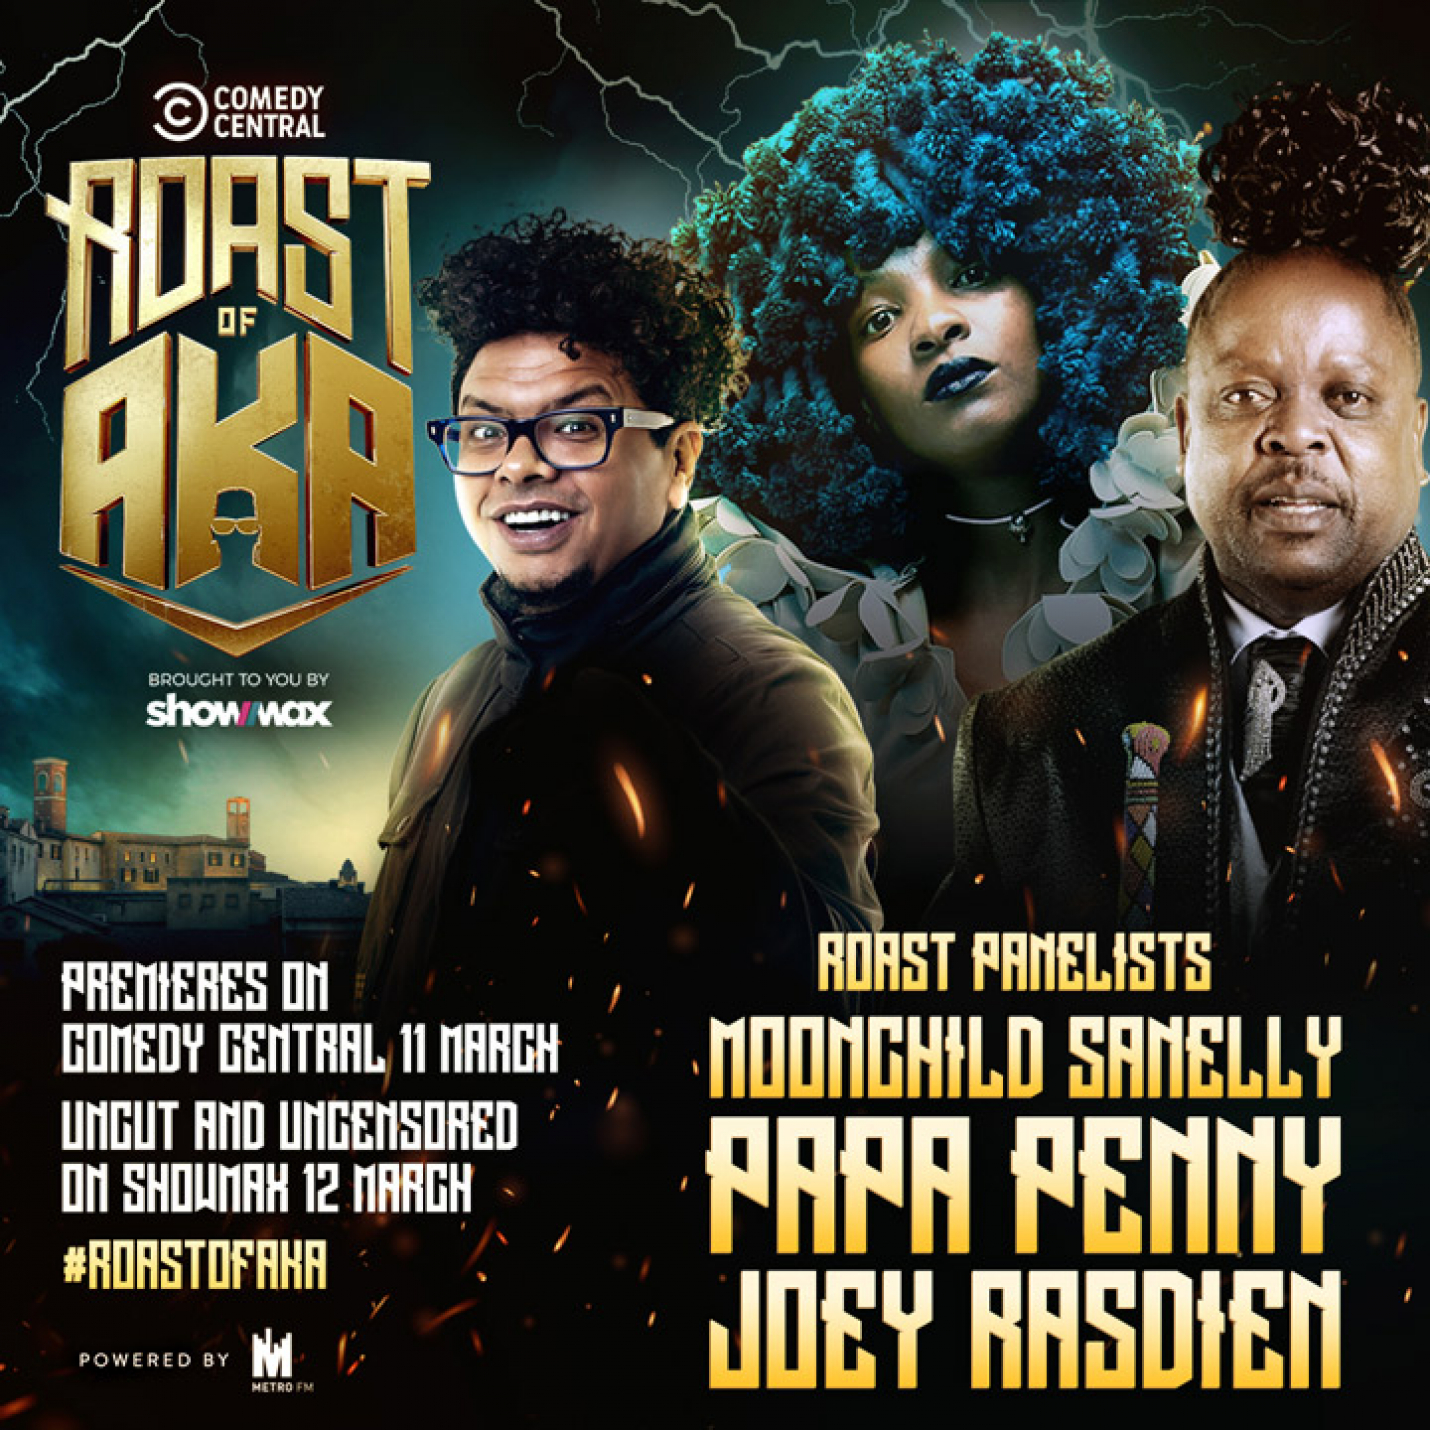 Moonchild Sanelly, Papa Penny and Joey Rasdien join the Roast Of AKA